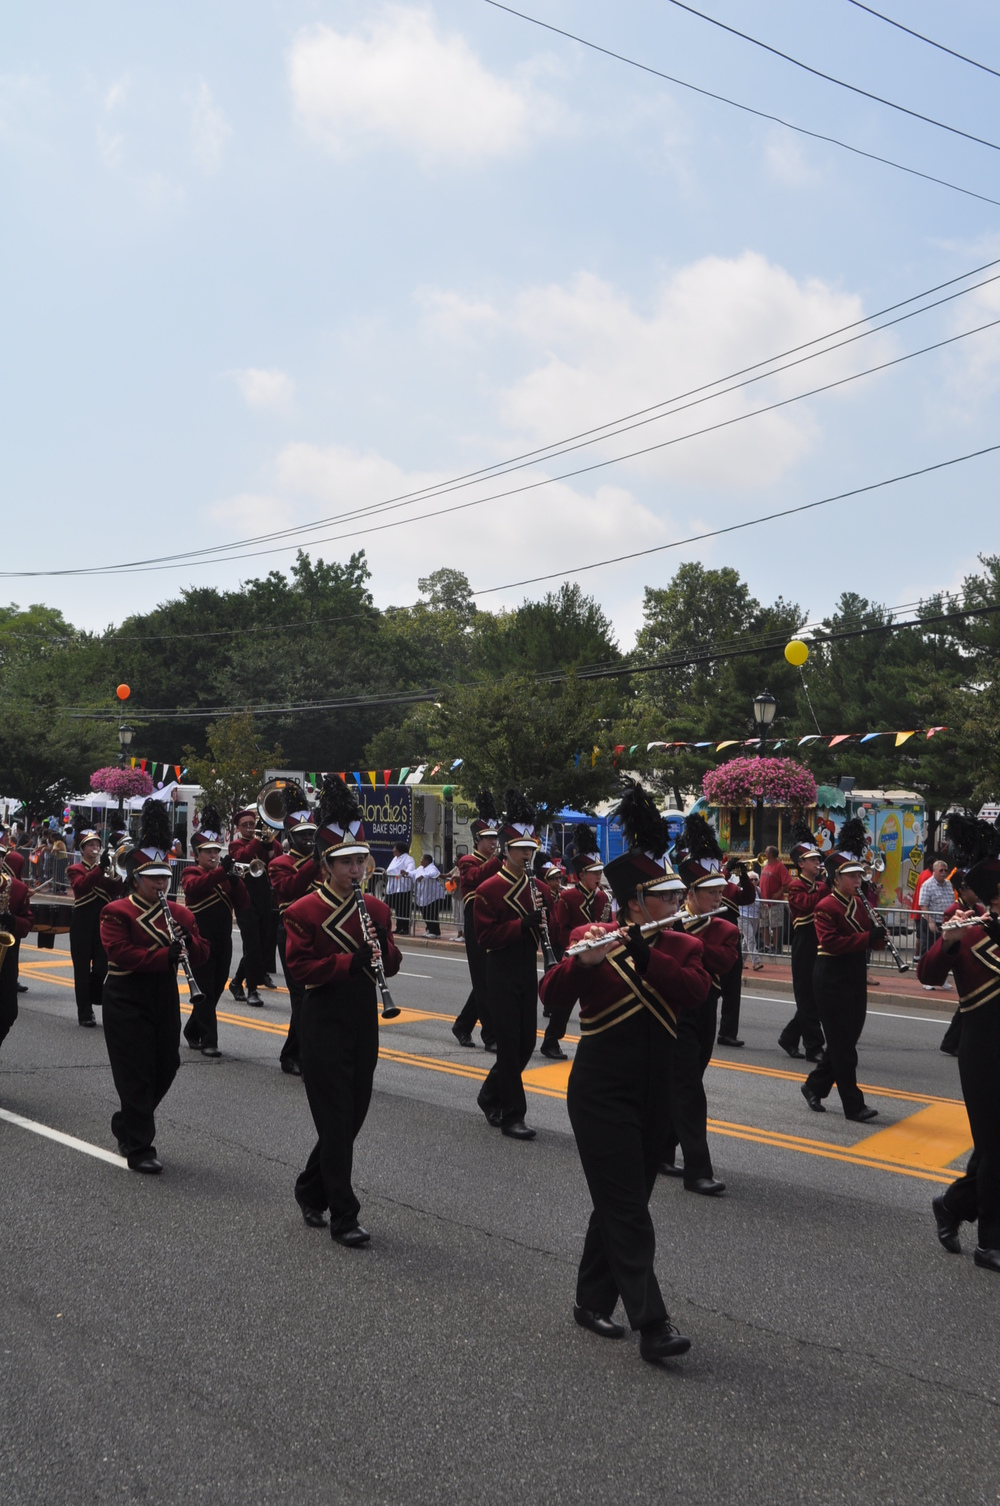 The Whitman Wildcats marching band braves the heat in full uniform to delight spectators.